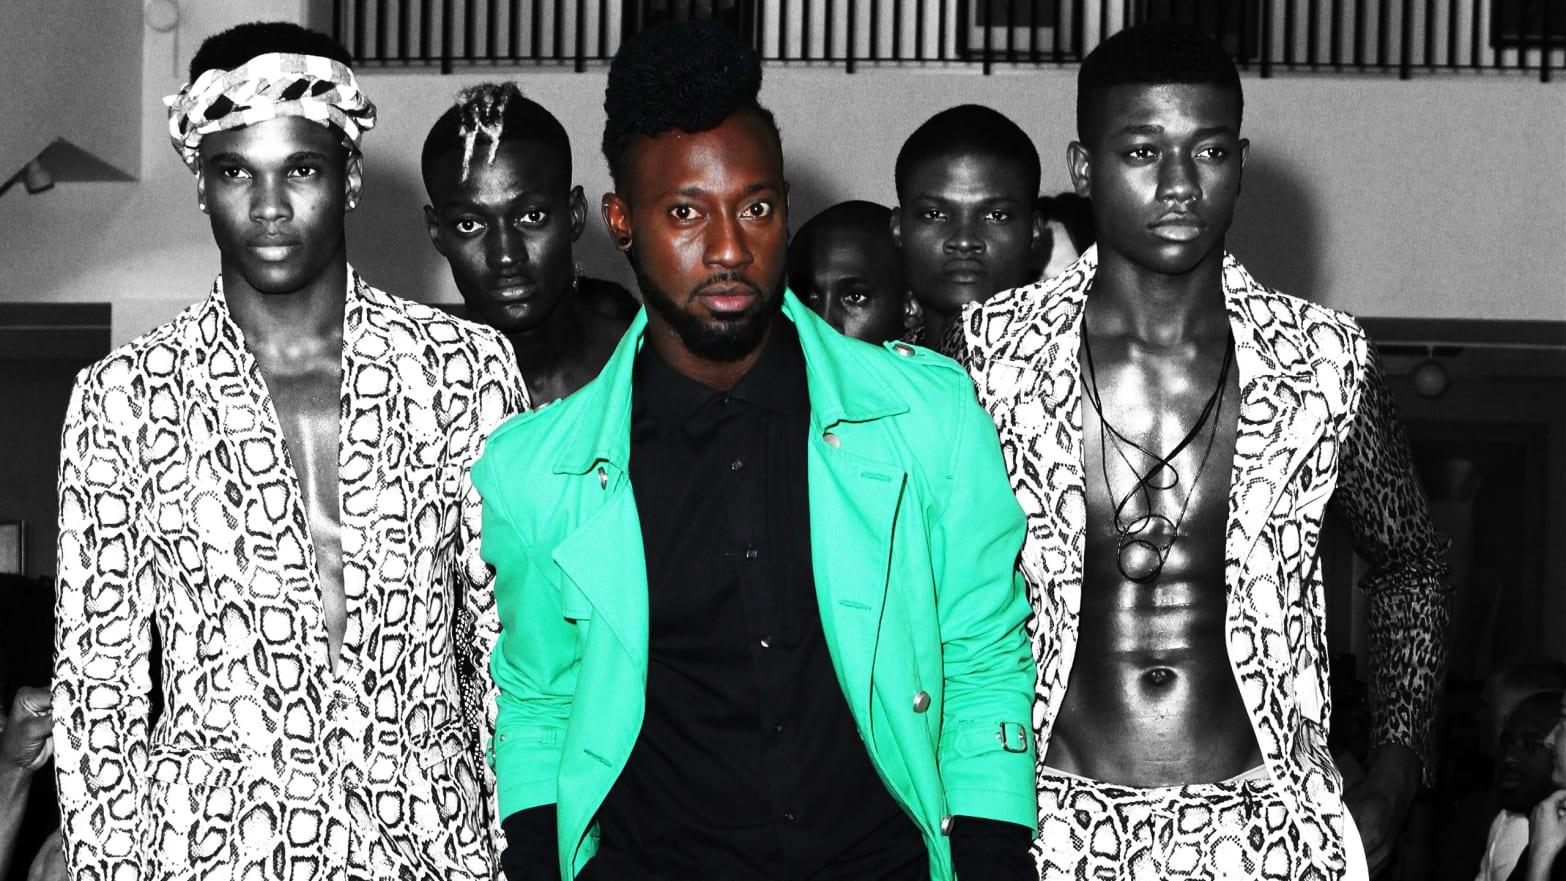 Menswear designer Dexter Pottinger (C) poses on the runway.